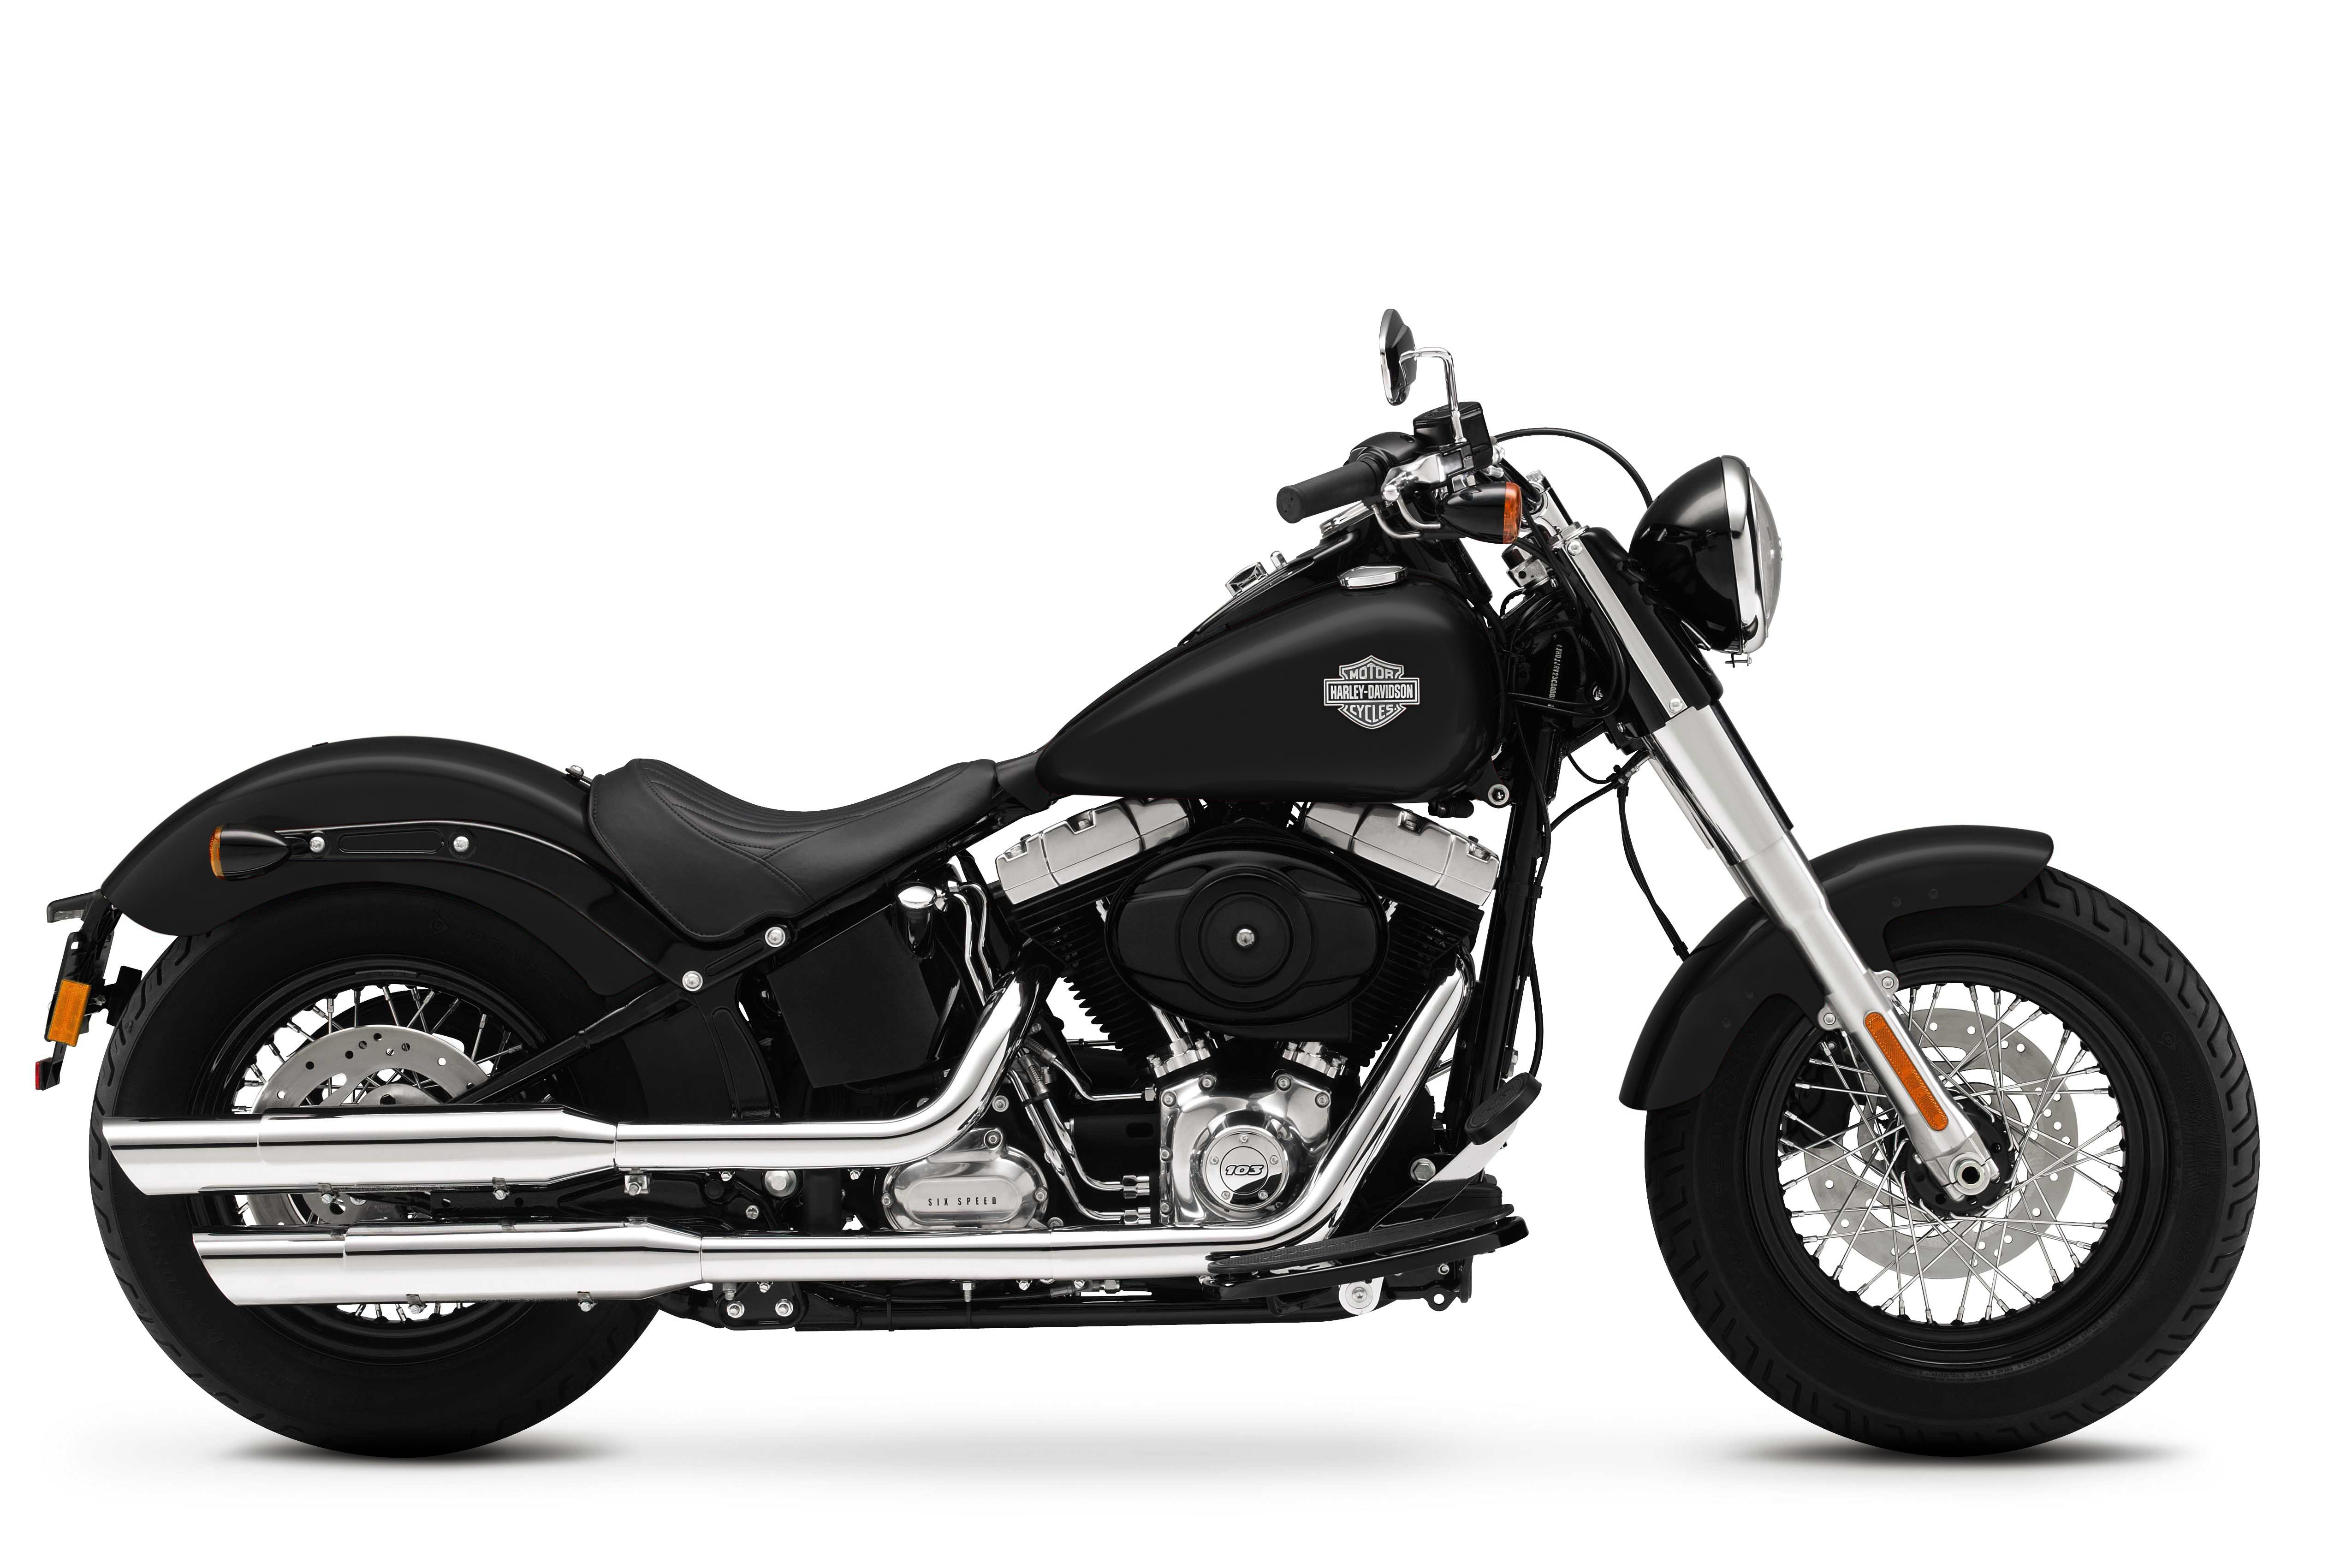 Harley Davidson Softail Slim Visordown